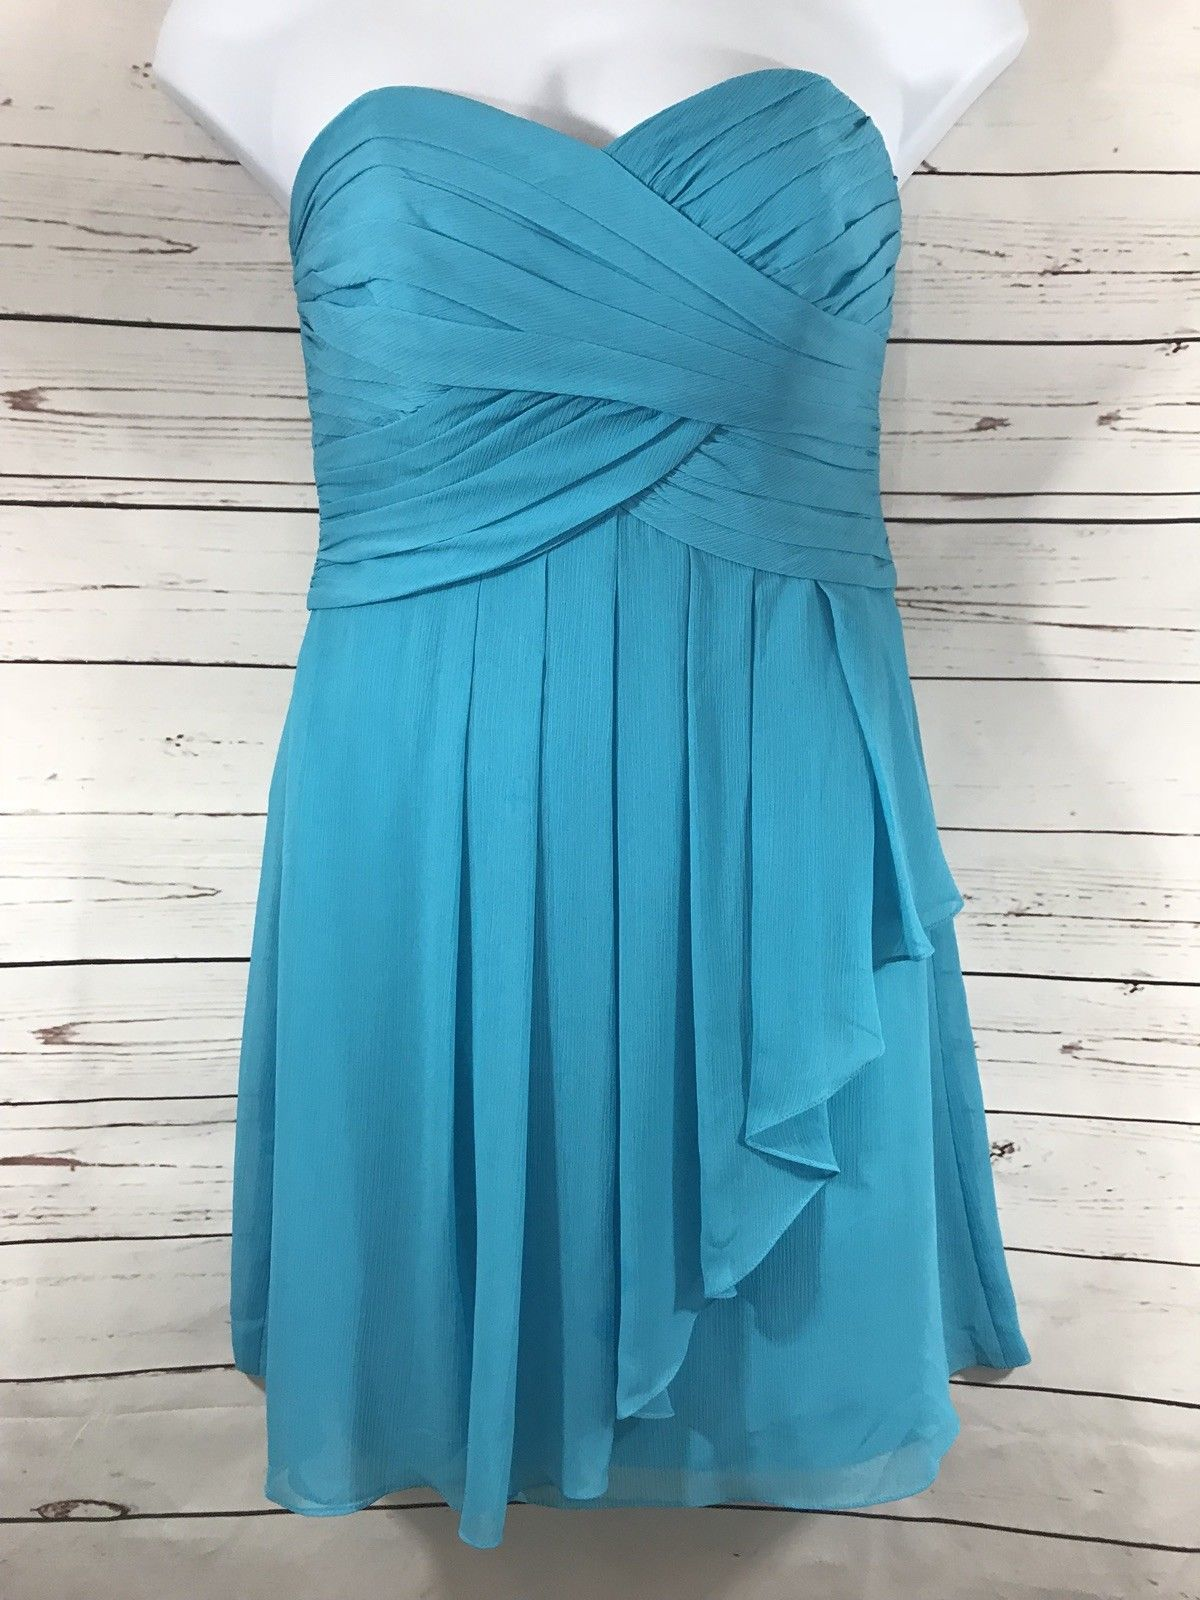 Primary image for Women's Davids Bridal Sz 10 Aqua Blue Formal/Bridesmaid Strapless Dress